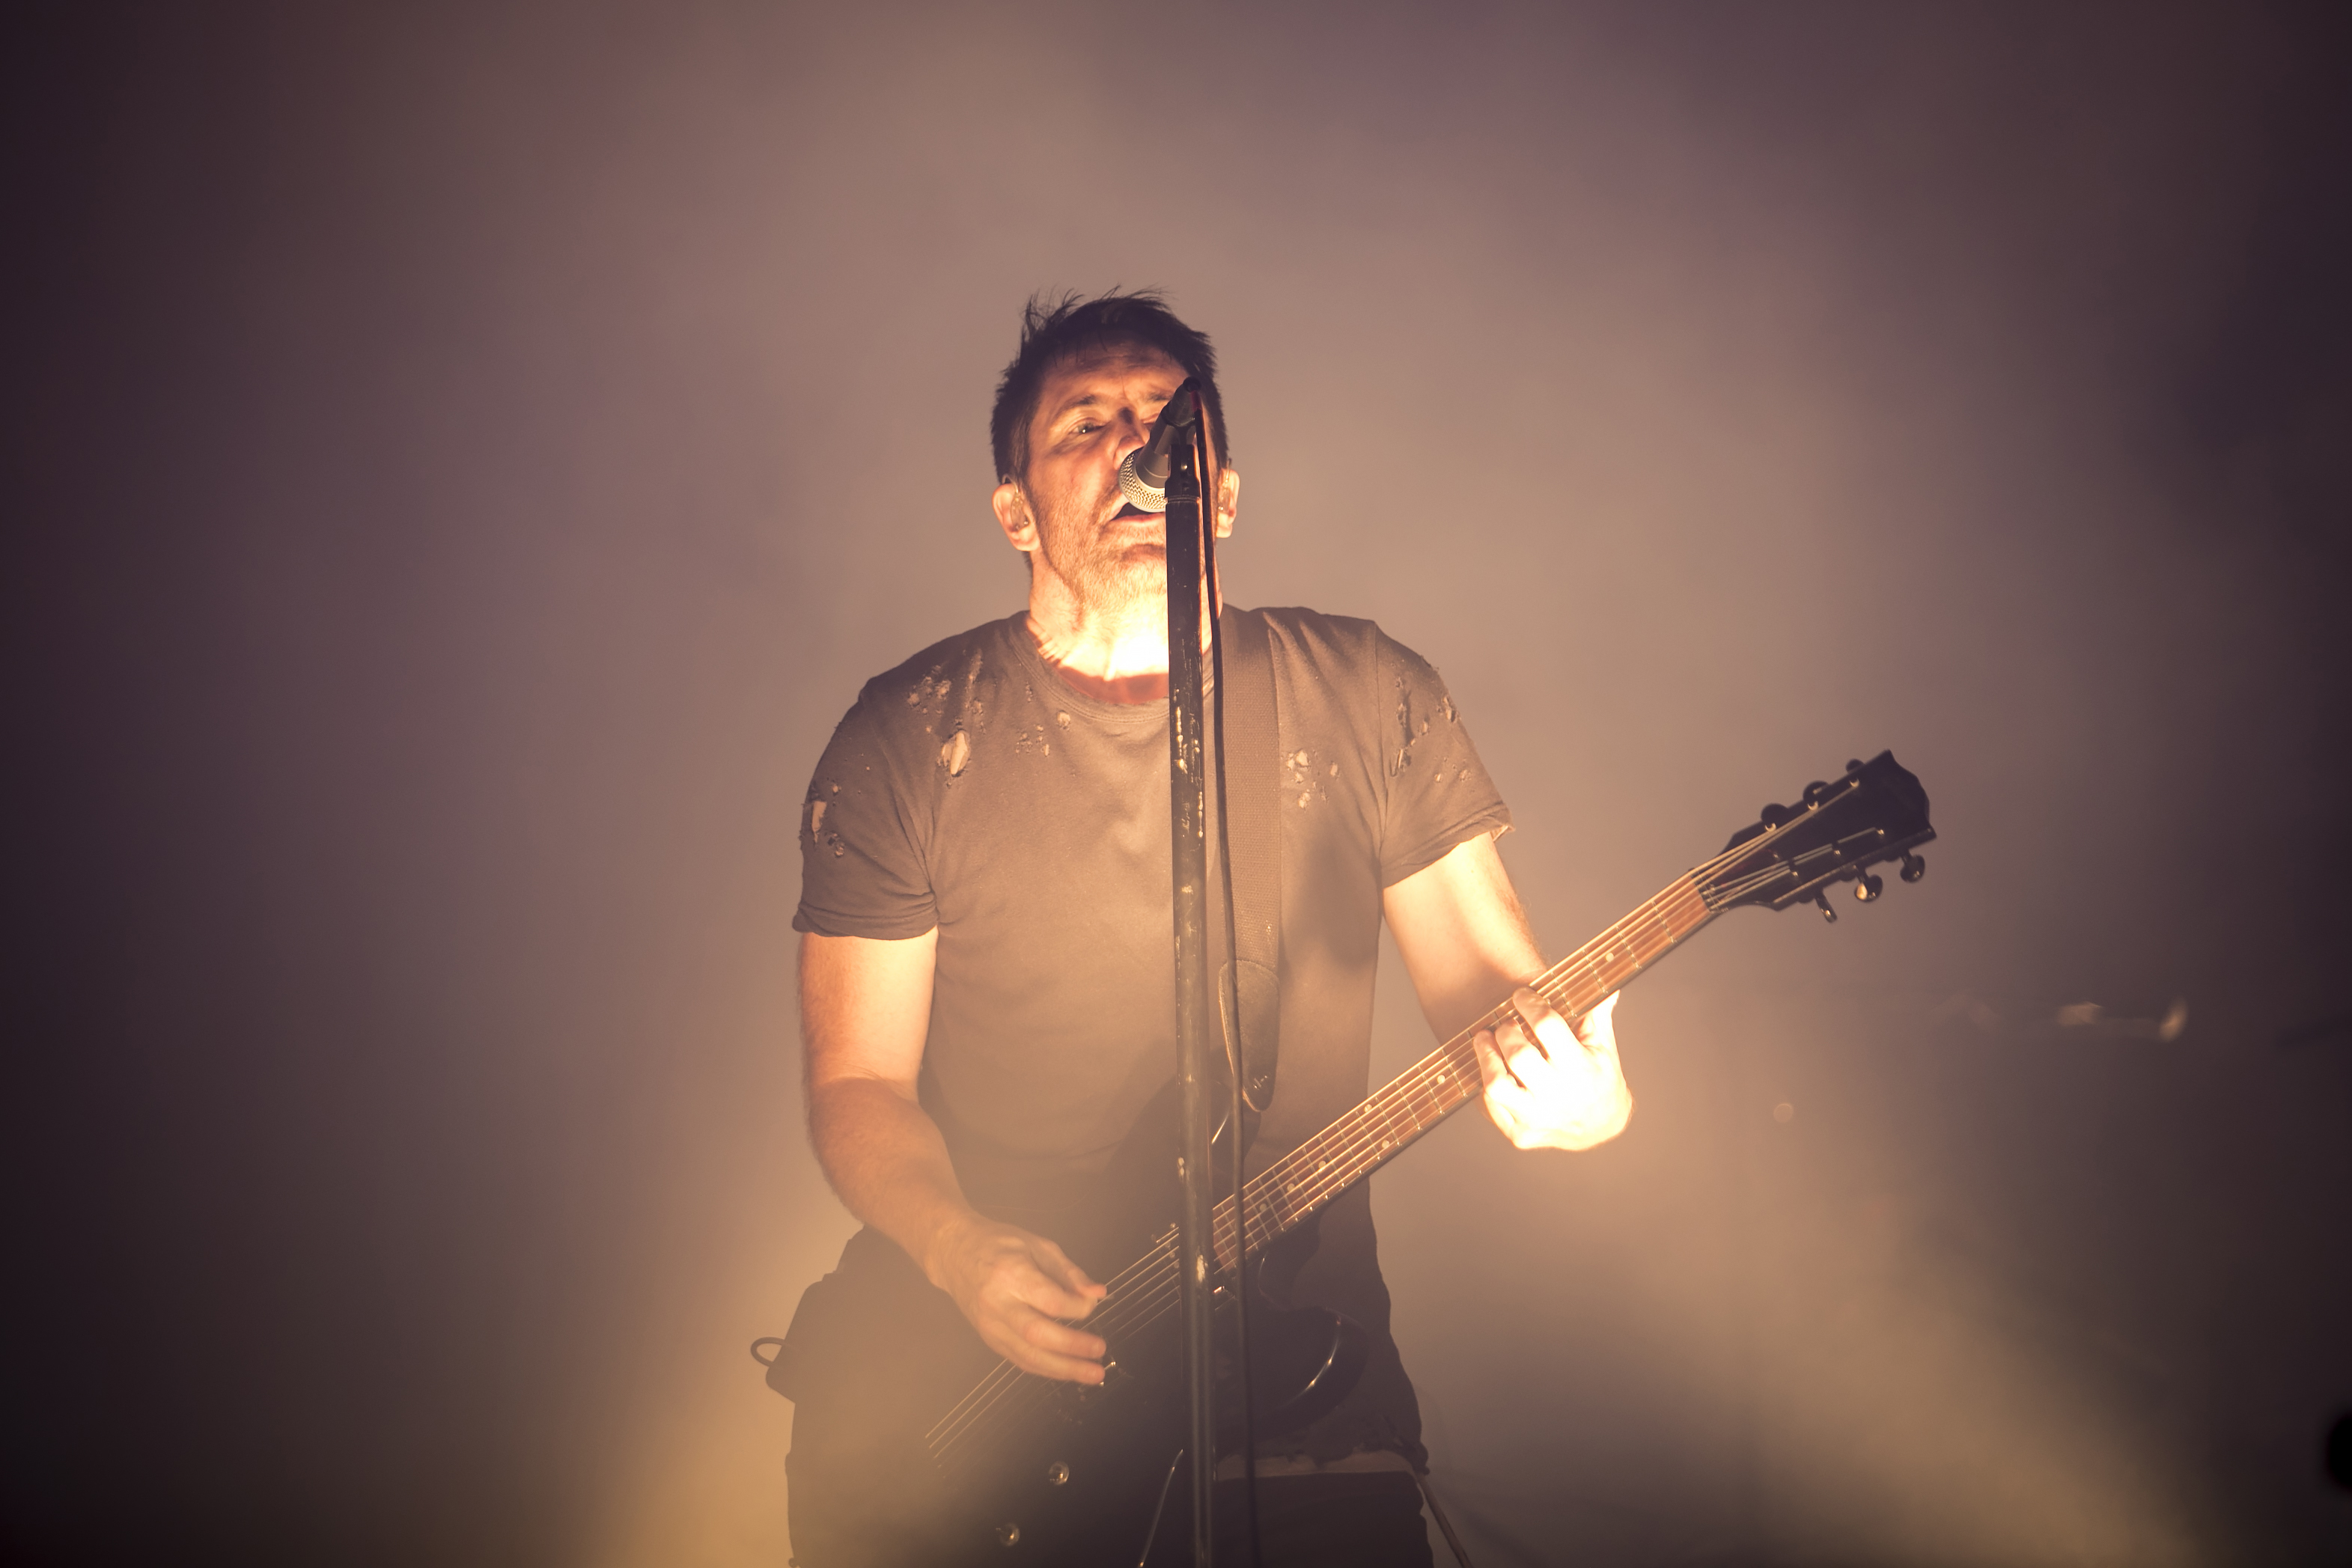 Trent Reznor, of Nine Inch Nails, performs on day one of Riot Fest in Douglas Park, Sept. 15, 2017. The band returns to headline the festival this year.